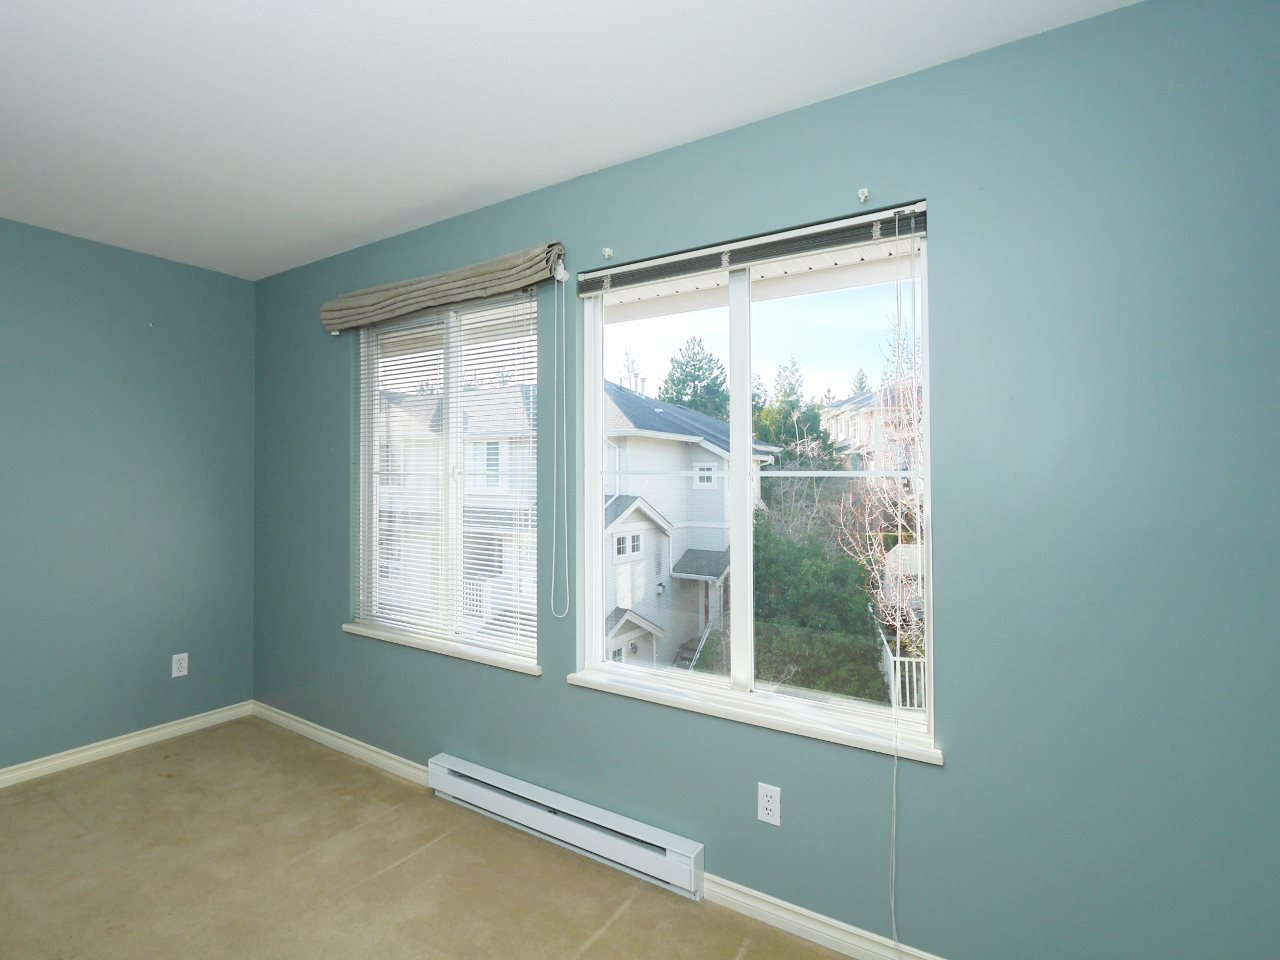 """Photo 15: Photos: 27 14952 58 Avenue in Surrey: Sullivan Station Townhouse for sale in """"HIGHBRAE"""" : MLS®# R2440469"""